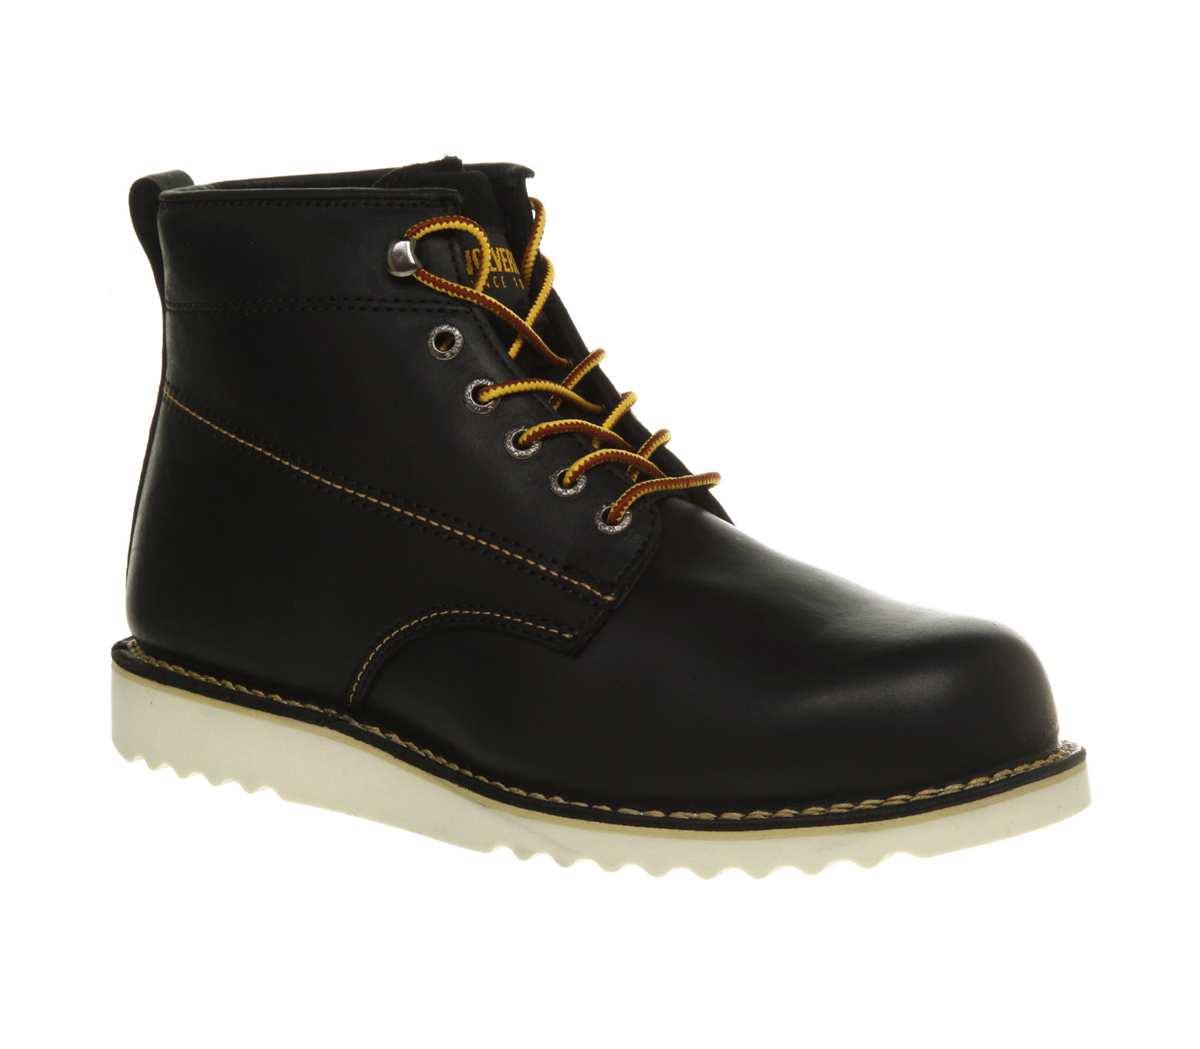 Mens Wolverine Rory Round Toe Boot Black Leather Boots Ebay